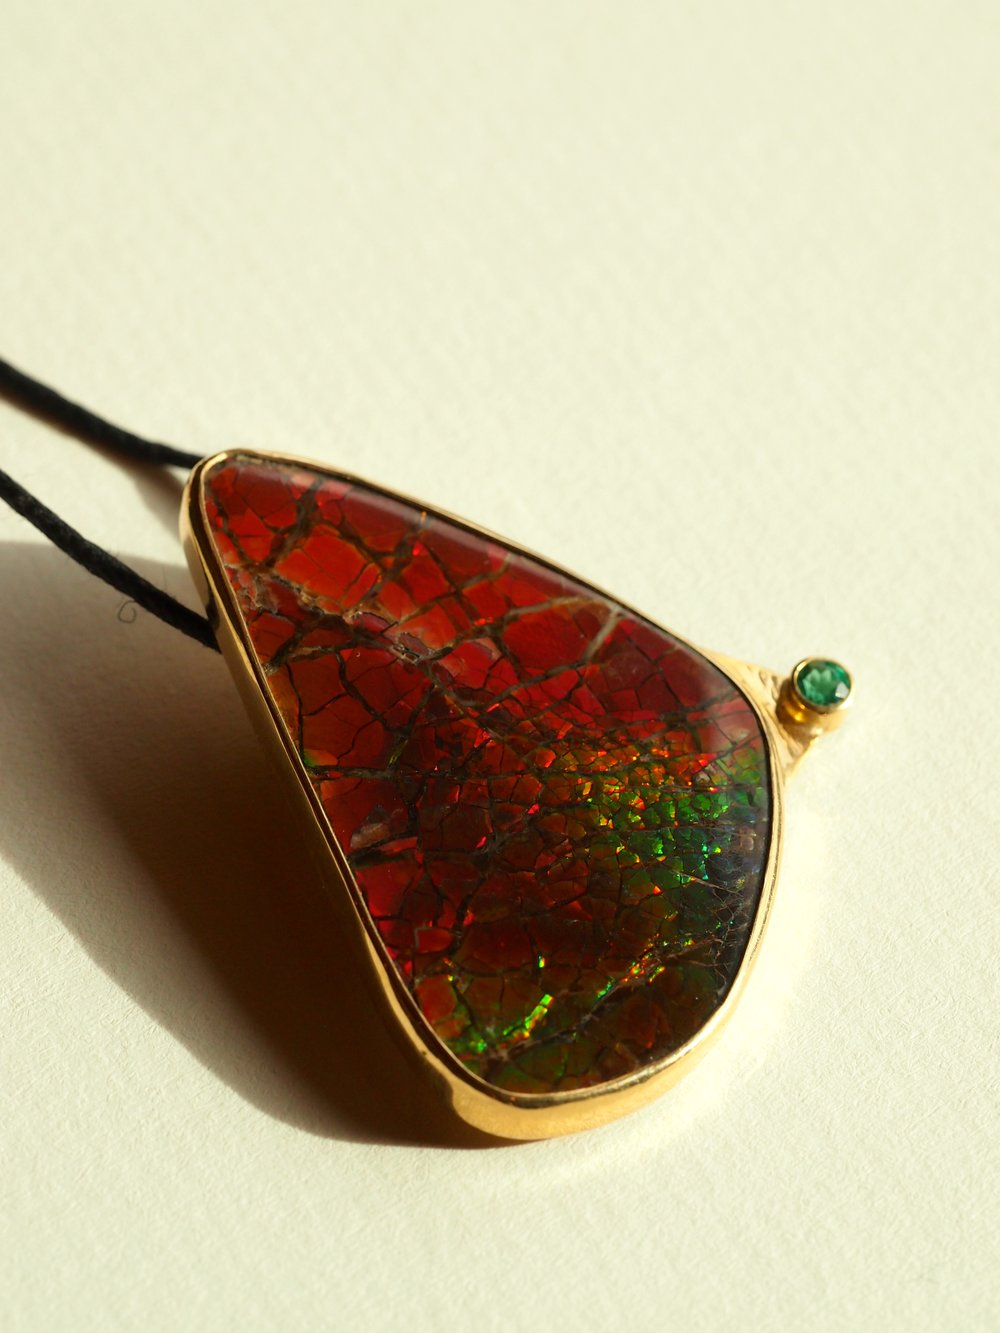 Canadian Ammolite Pendant with Emerald, set in 14k Gold. Available for purchase.